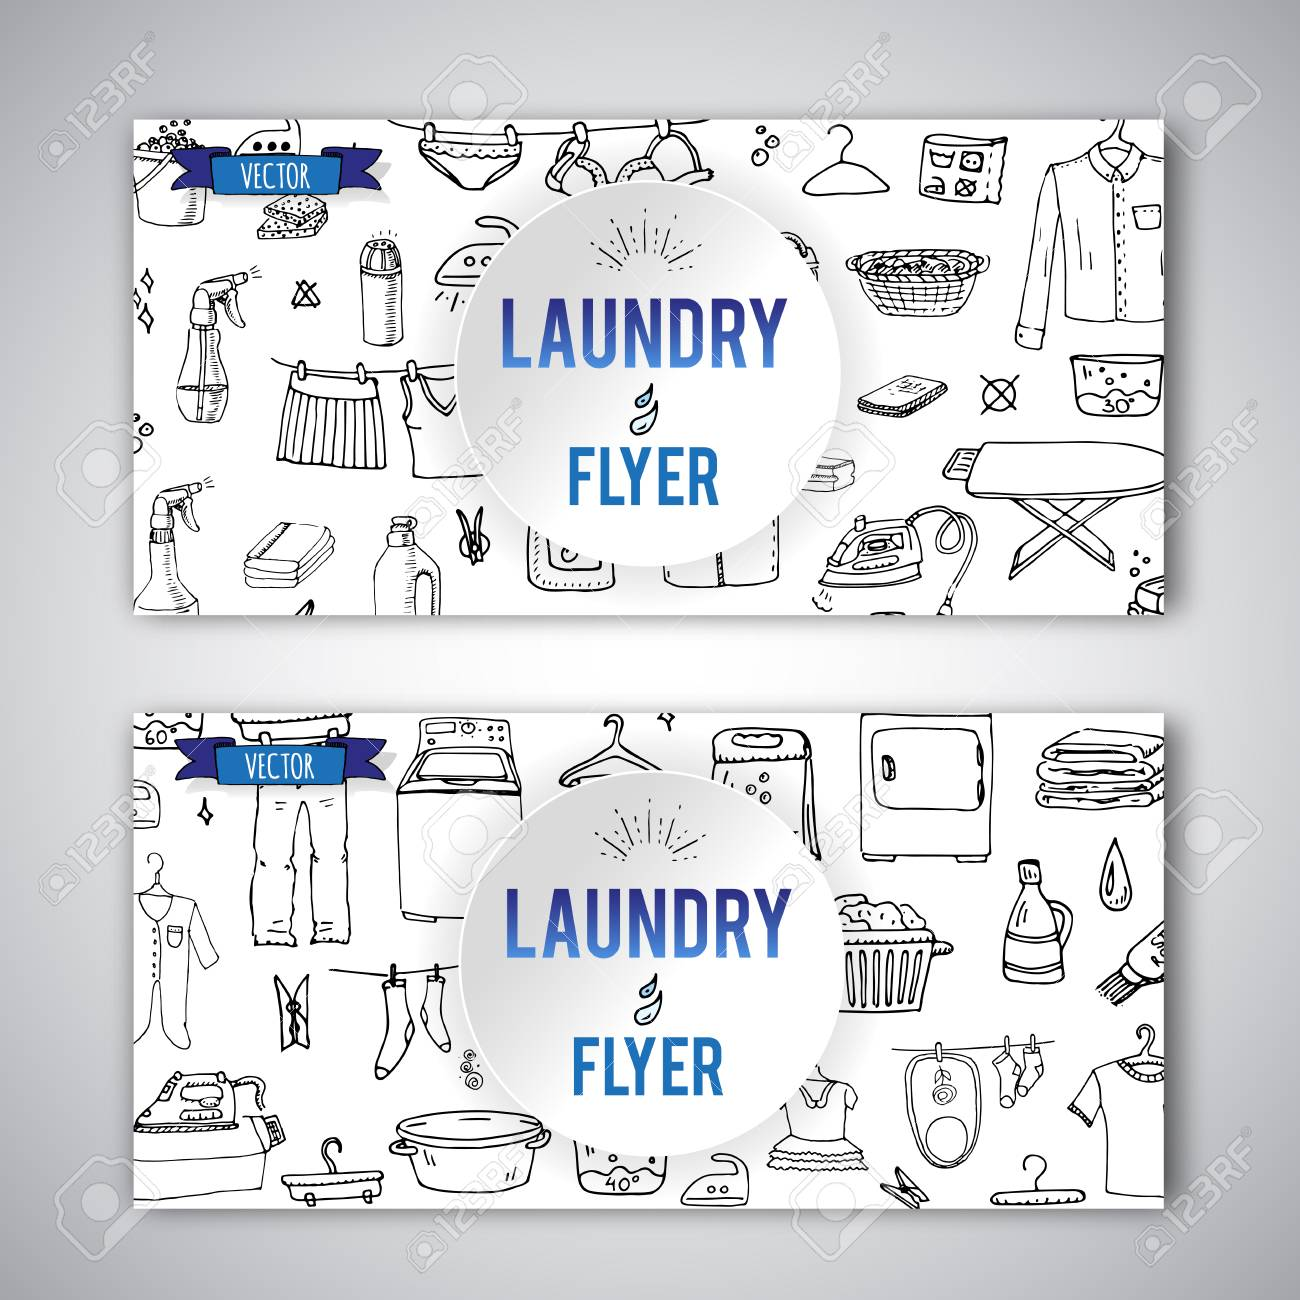 Hand drawn doodle laundry flyer set vector illustration washing hand drawn doodle laundry flyer set vector illustration washing icons laundry concept elements cleaning business symbols biocorpaavc Image collections